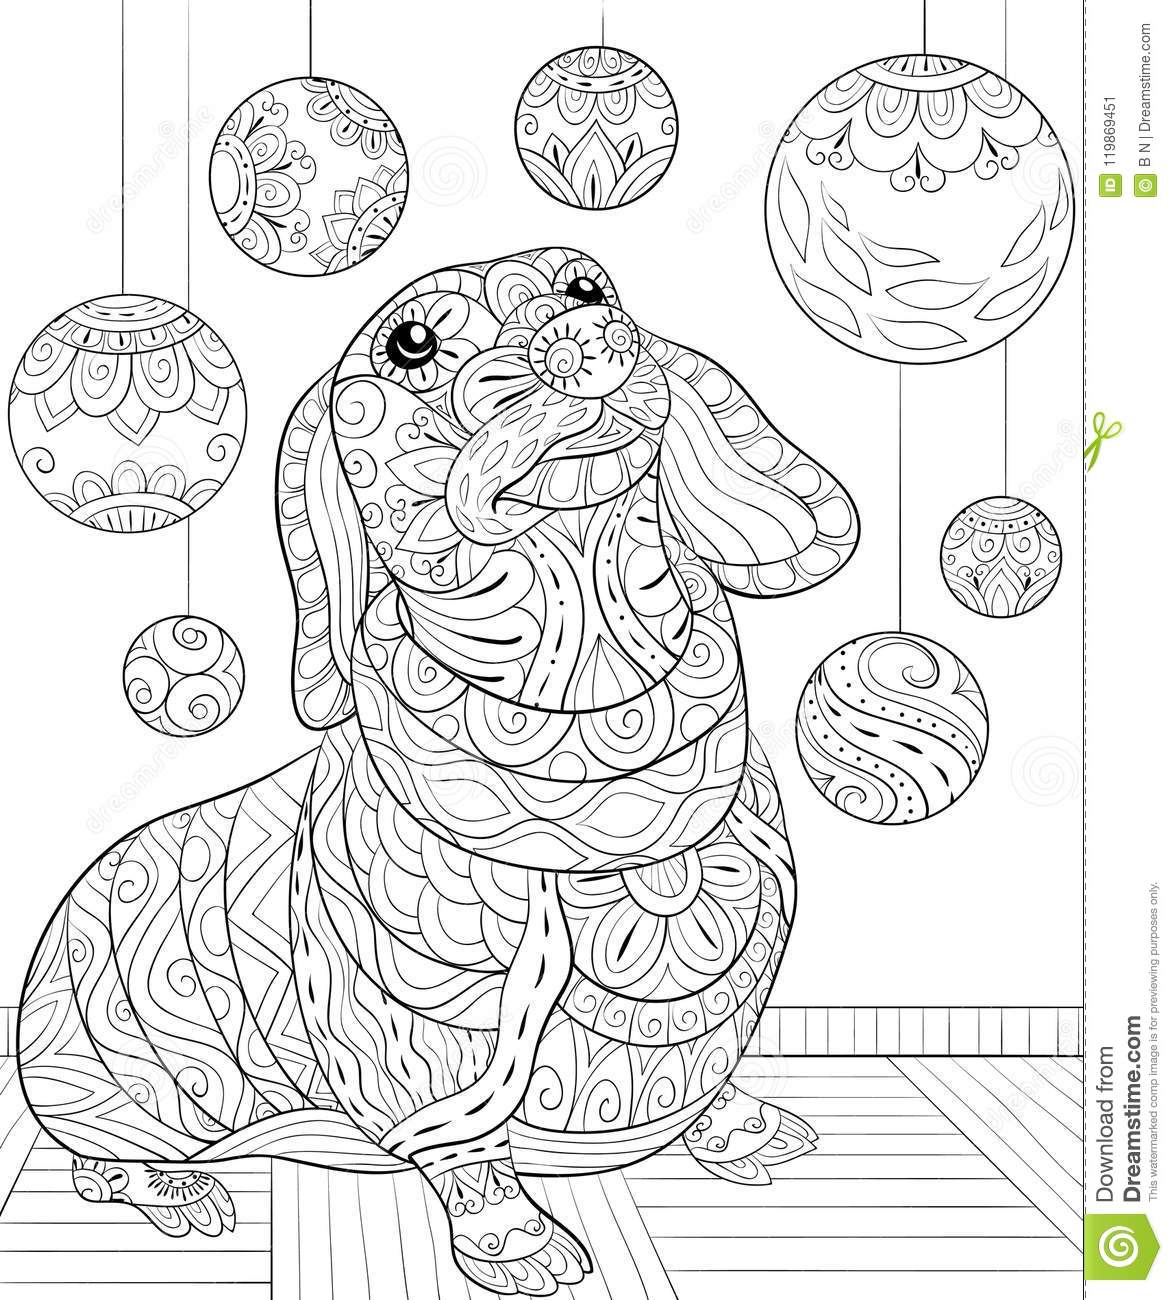 Christmas Dog Coloring Page With Adult Book A On The Background